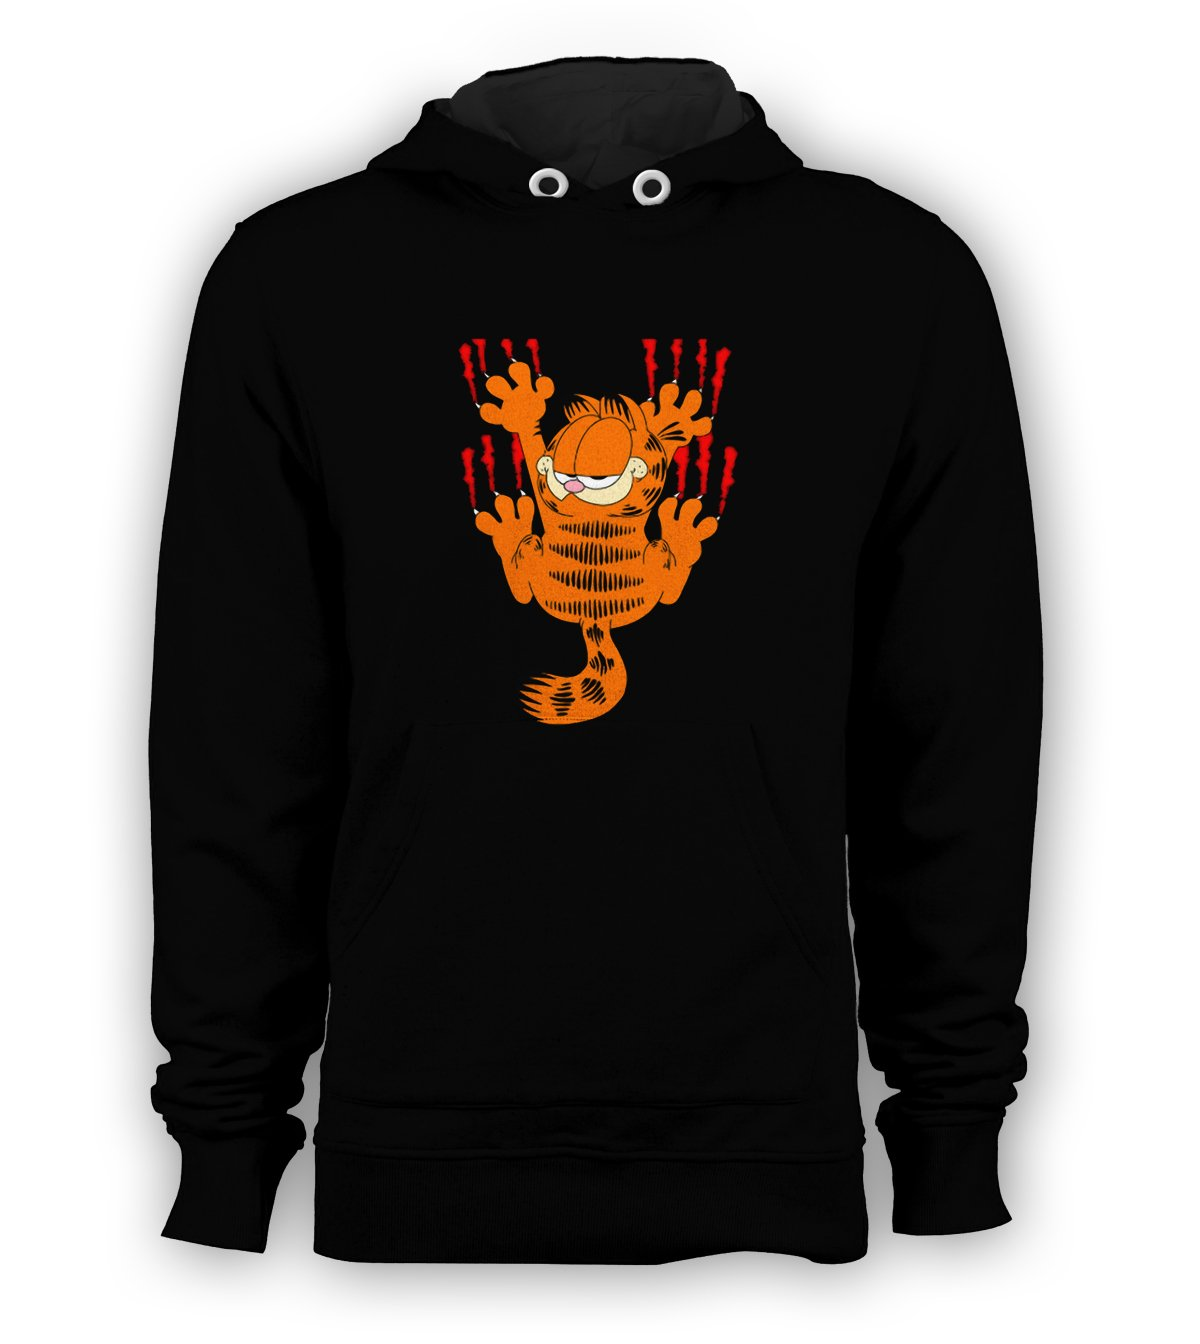 Garfield Pullover Hoodie Men Sweatshirts Size S to 3XL New Black